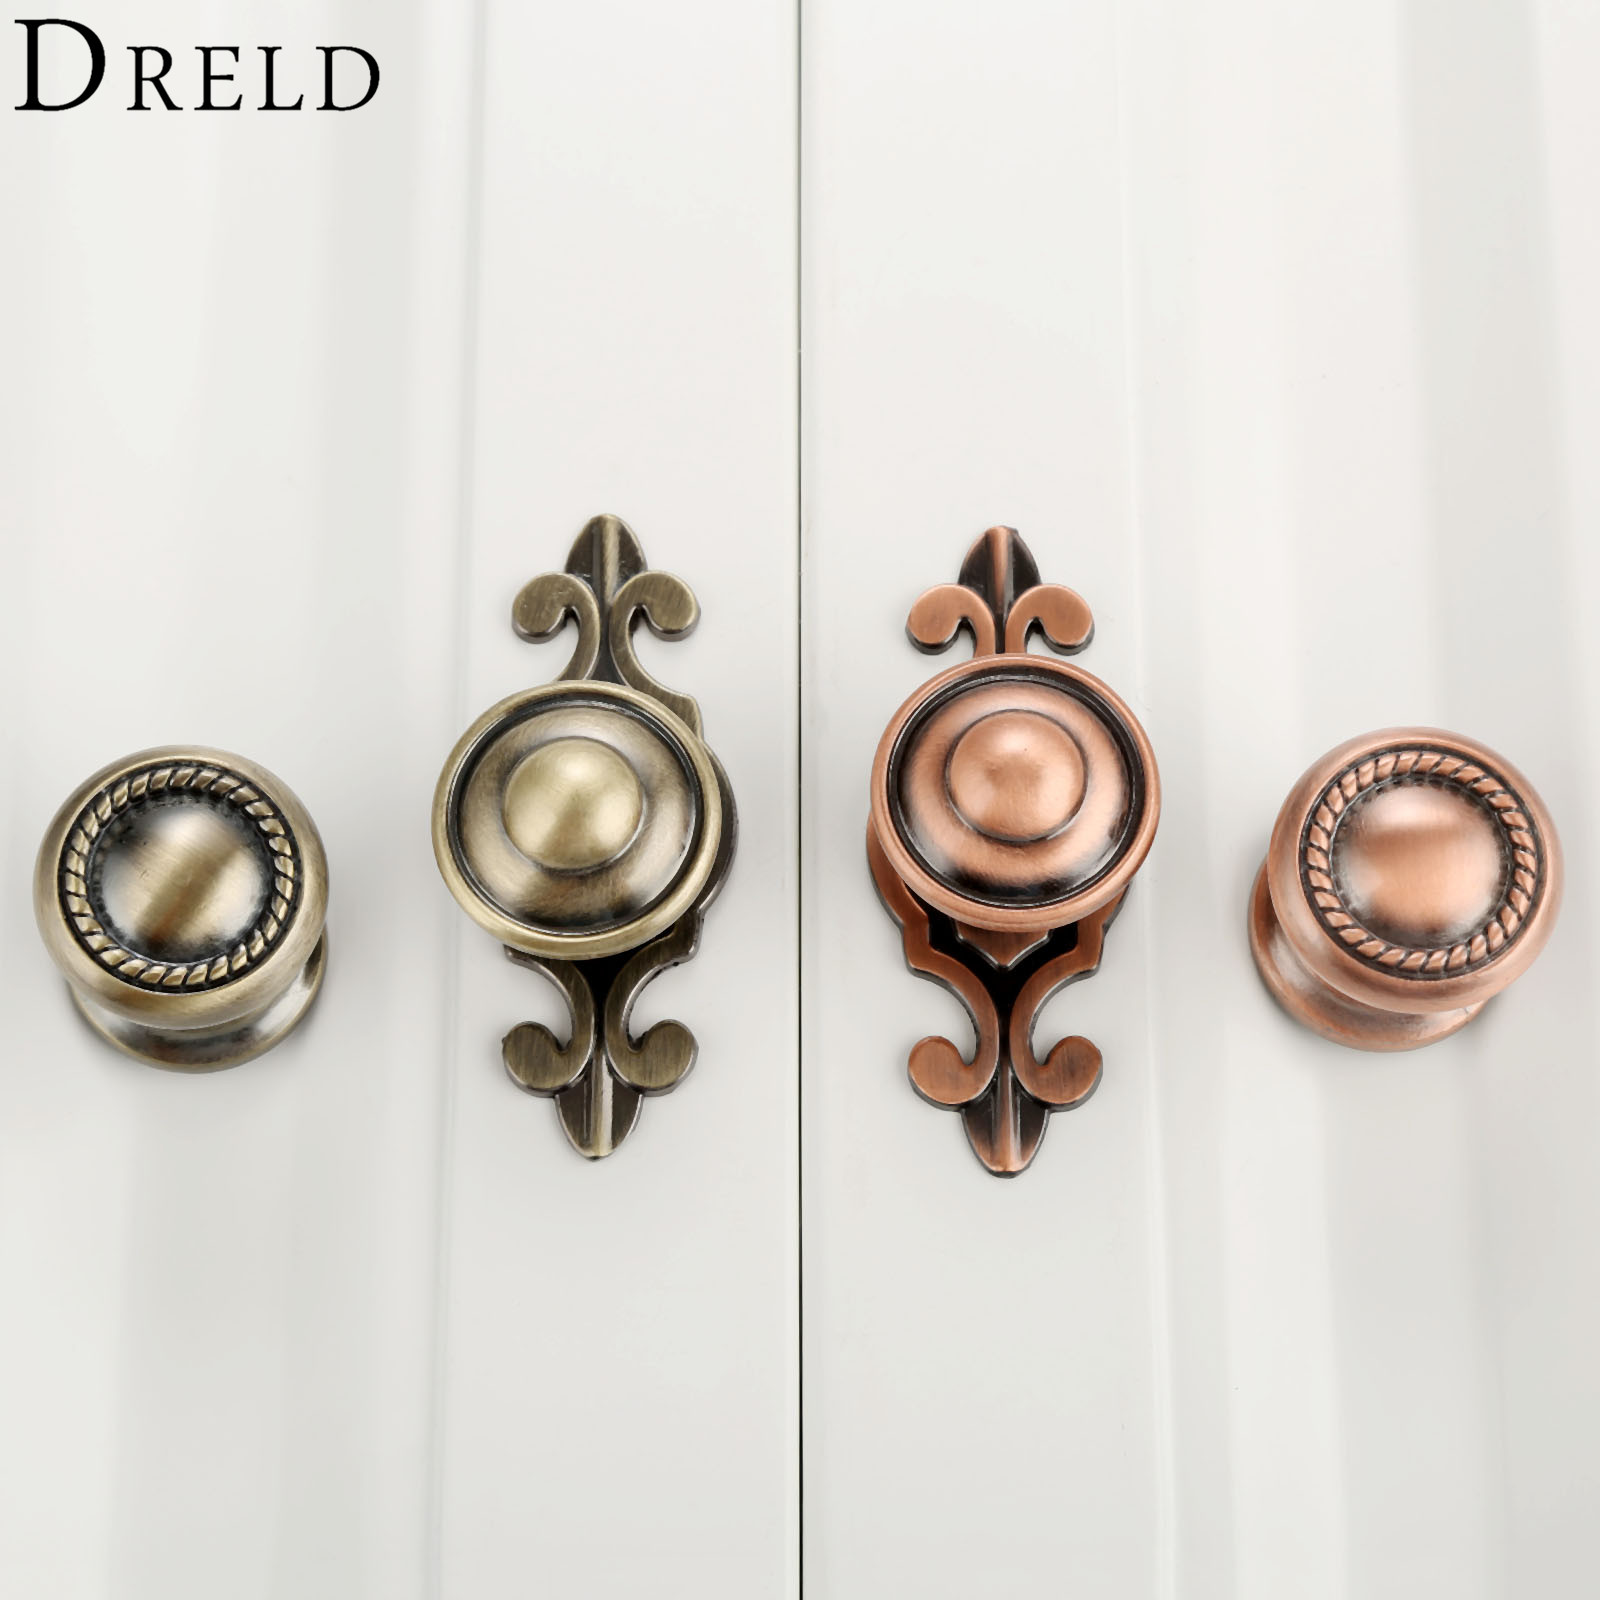 DRELD Furniture Handles Vintage Cabinet Knobs and Handles Alloy Door Knob Cupboard Drawer Kitchen Pull Handle Furniture Hardware dreld 96 128 160mm furniture handle modern cabinet knobs and handles door cupboard drawer kitchen pull handle furniture hardware